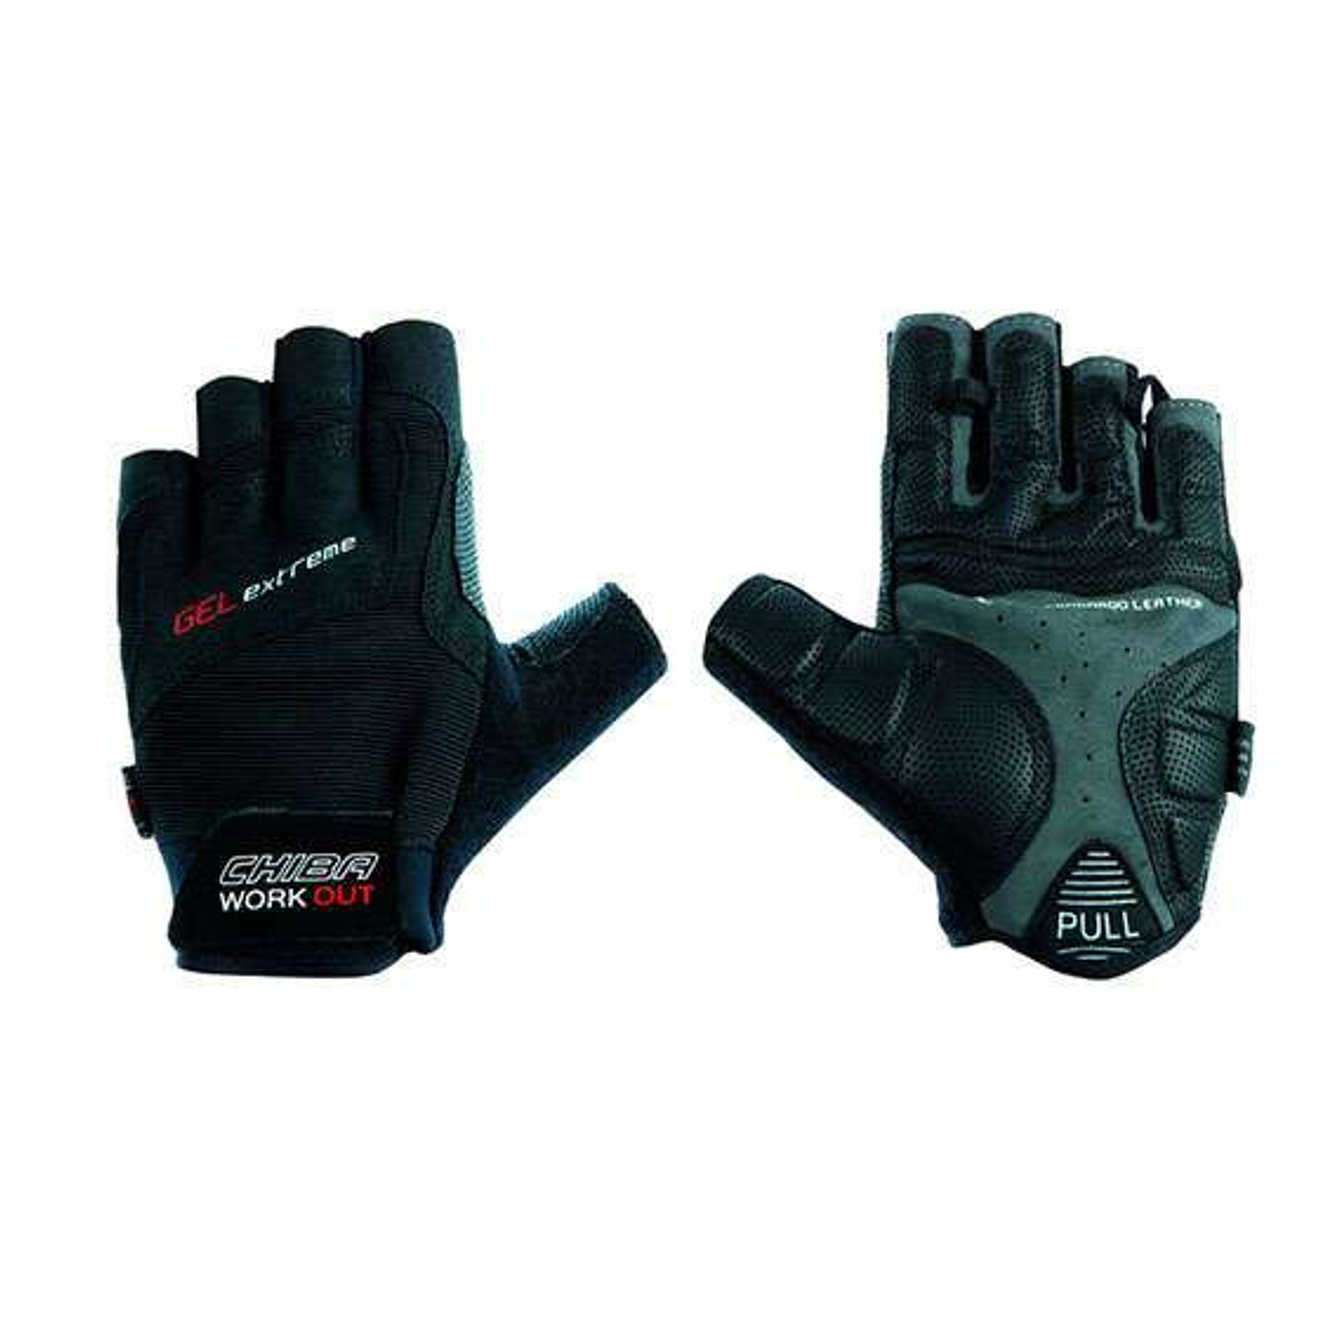 GEL EXTREM GLOVES NERO